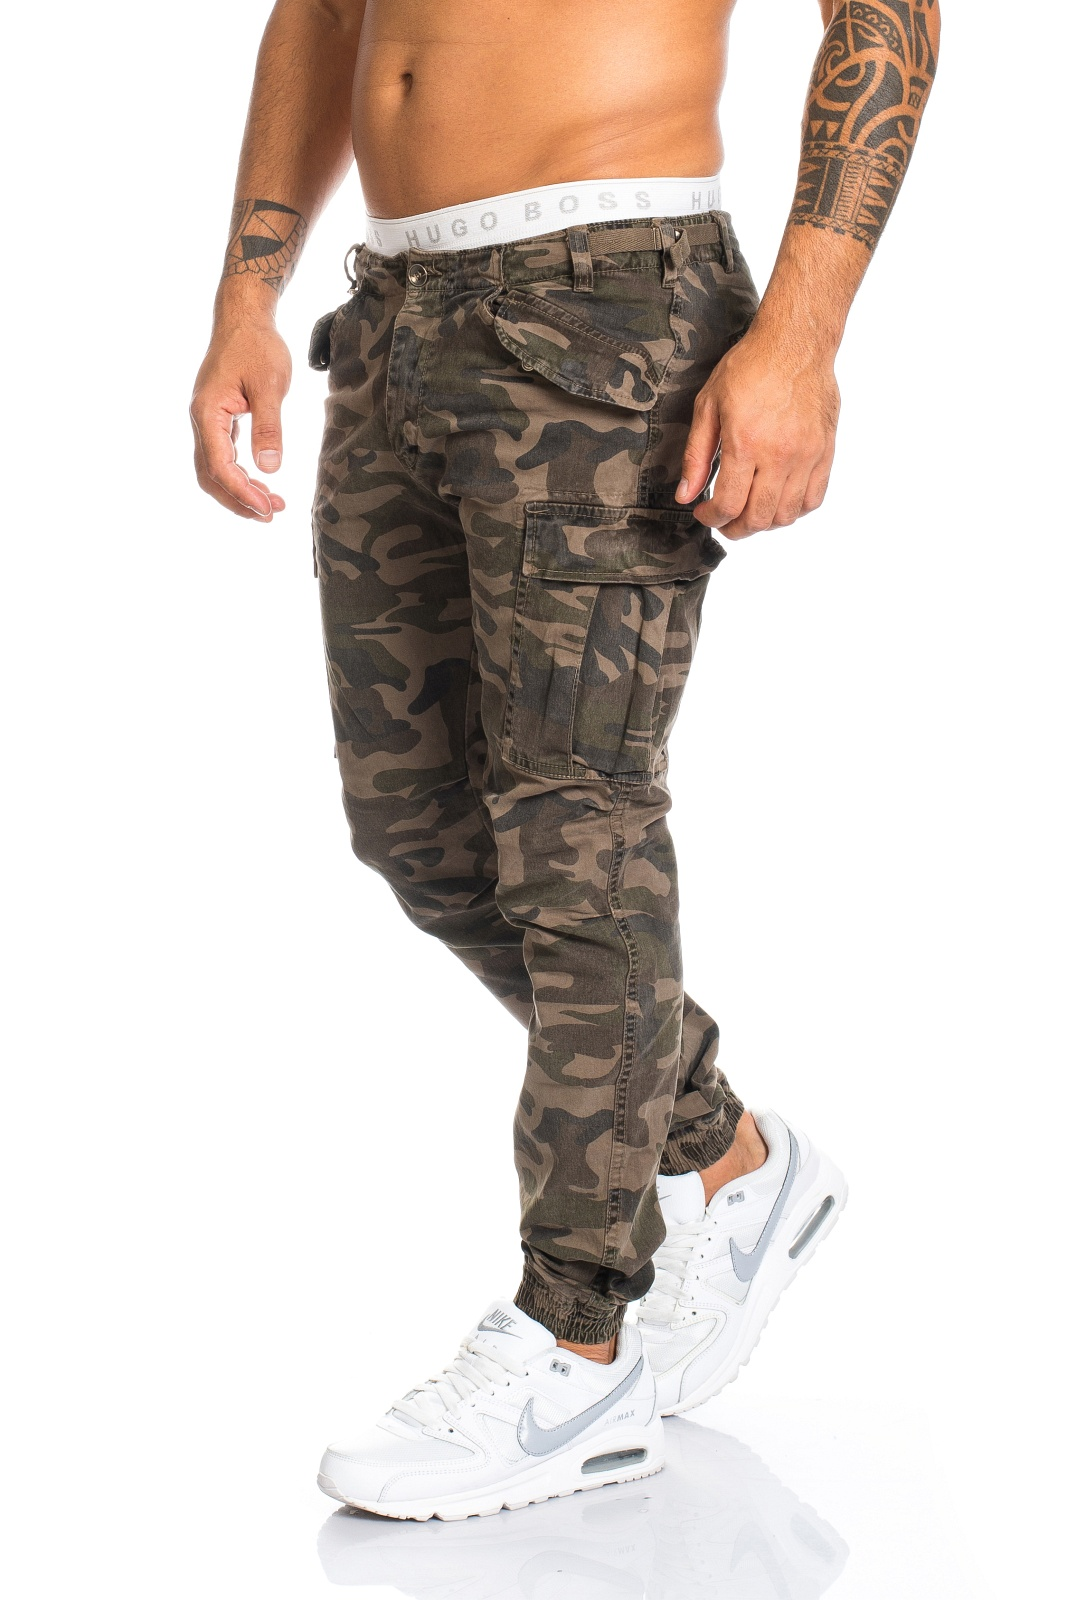 herren cargo hose freizeit outdoor army hose chino jogg. Black Bedroom Furniture Sets. Home Design Ideas